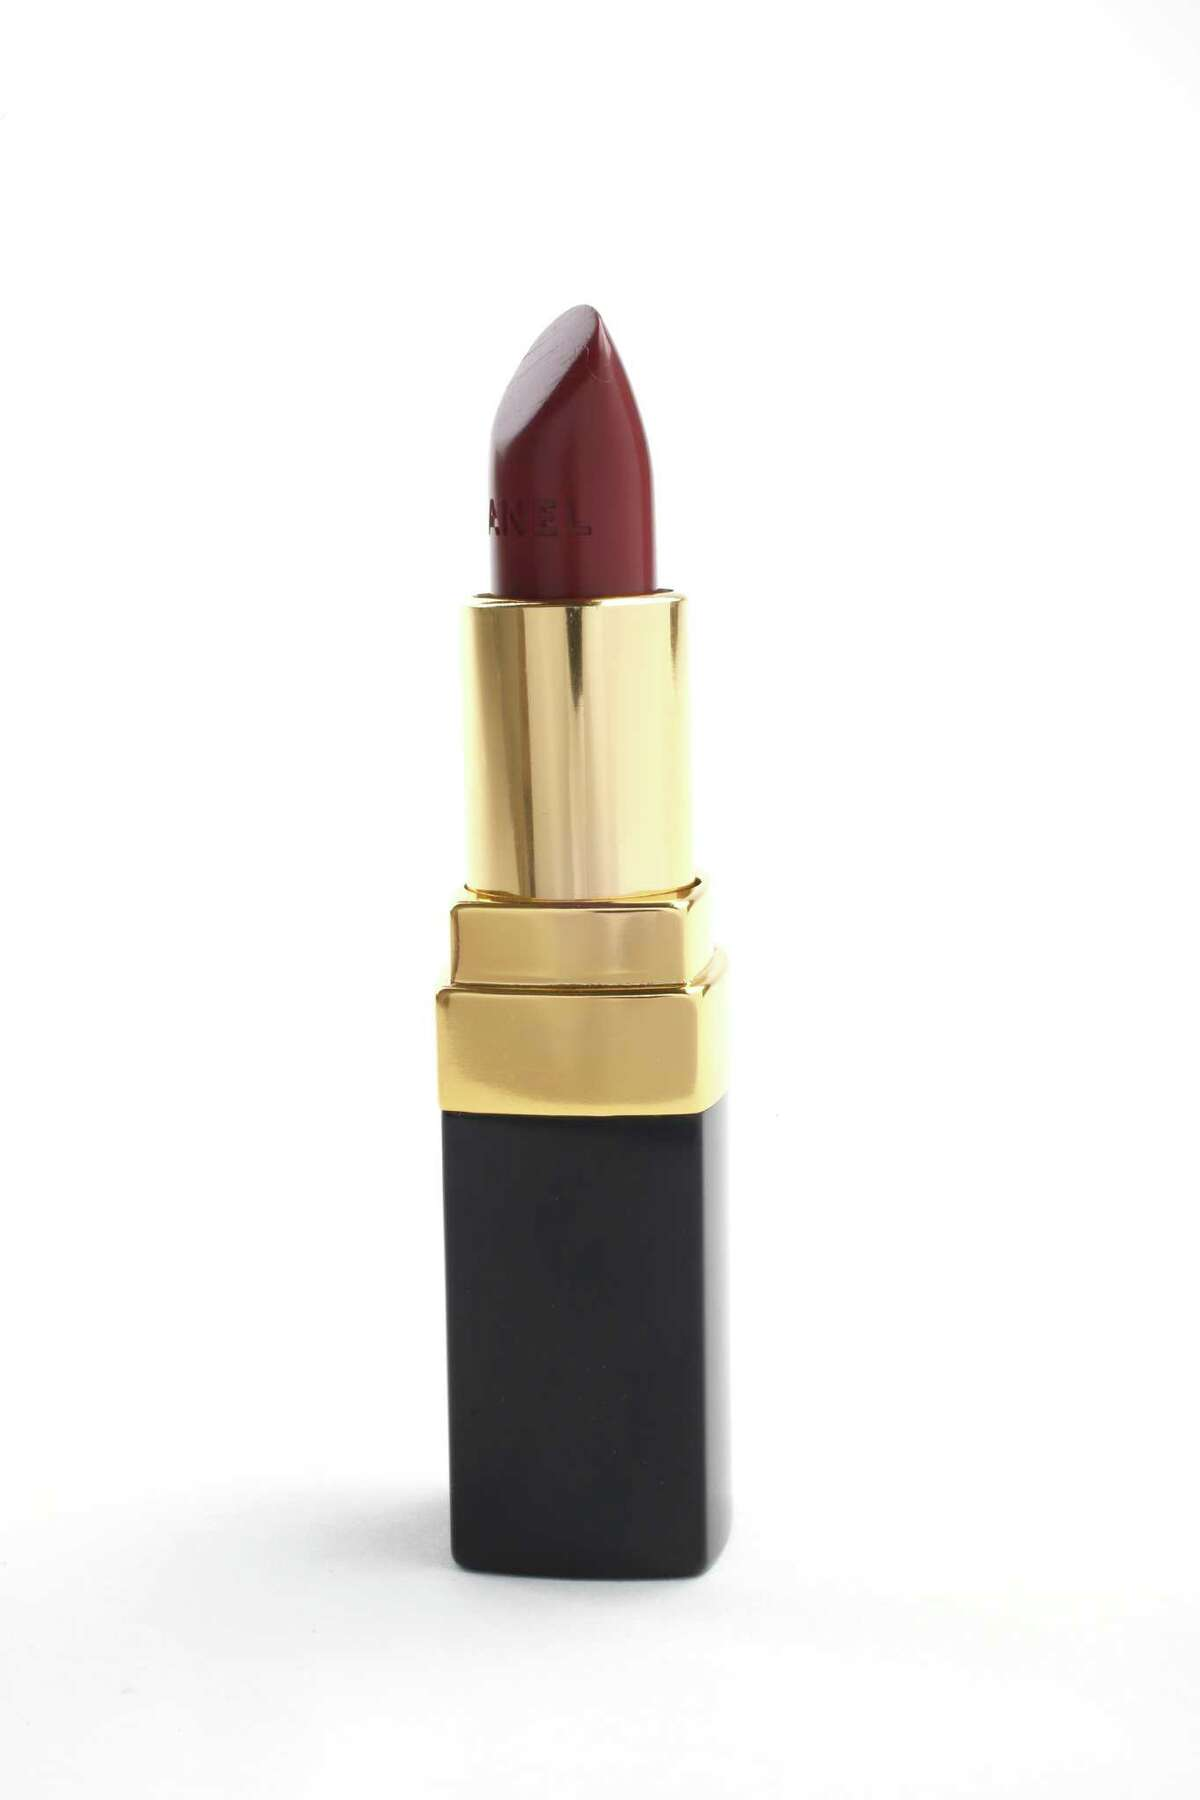 """Berry: Chanel's deep berry Rivoli Rouge Coco Hydrating Crème Lip Colour gives lips more moisture than a matte stick but with equally rich pigment for bold effect. Its red undertones give drama that's not too """"drama queen."""" $35, Bloomingdale's, 845 Market St., S.F., (415) 856-5300, www.bloomingdales.com."""